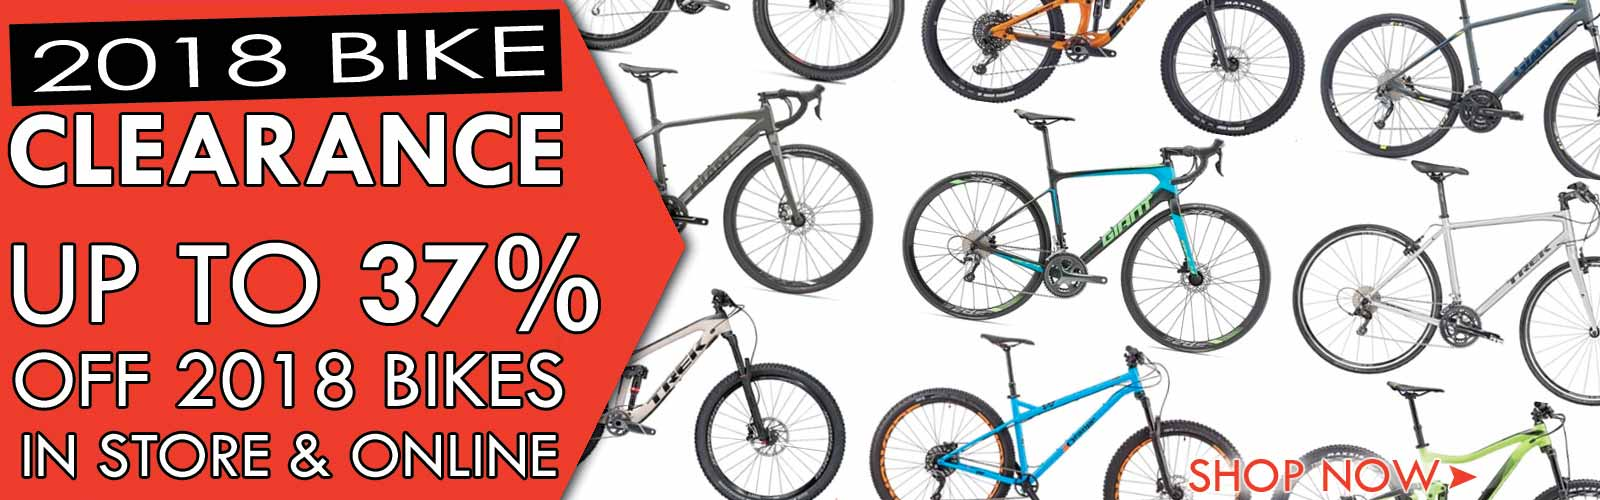 Clearance - up to 33% off 2018 bikes